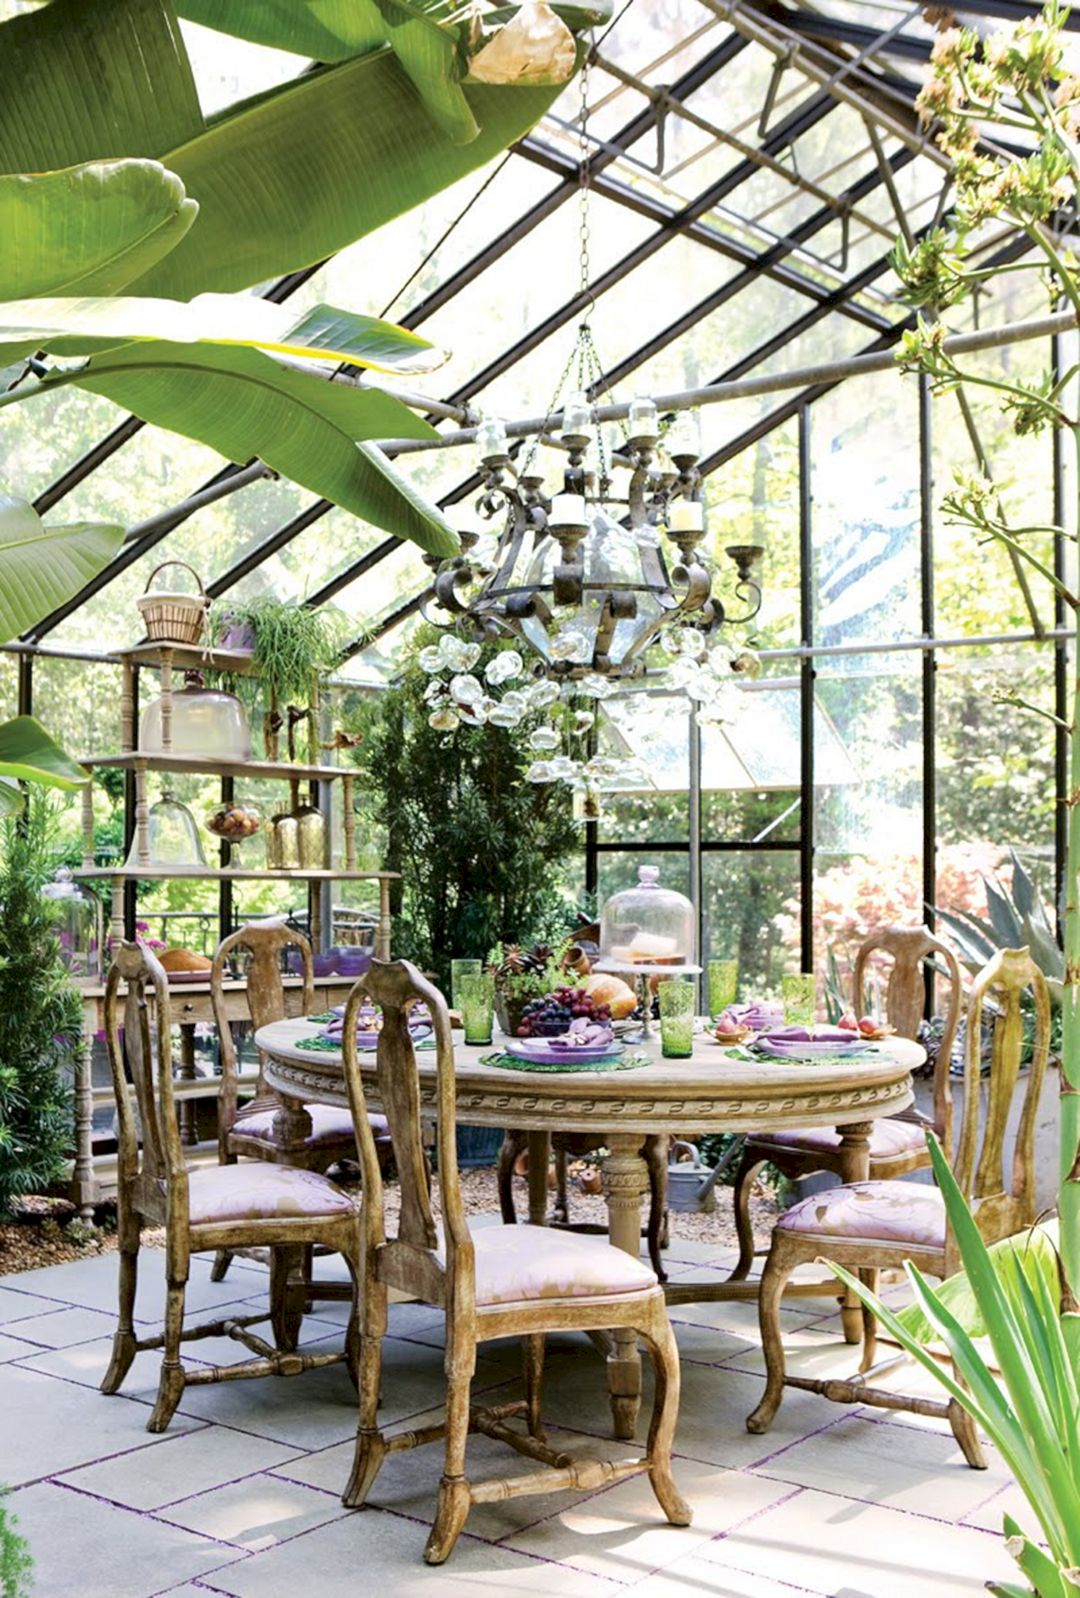 5 Stunning Sunroom Design Ideas 02 Sunroom Design Ideas 5 Stunning Sunroom Design Ideas 5 Stunning Sunroom Design Ideas 02